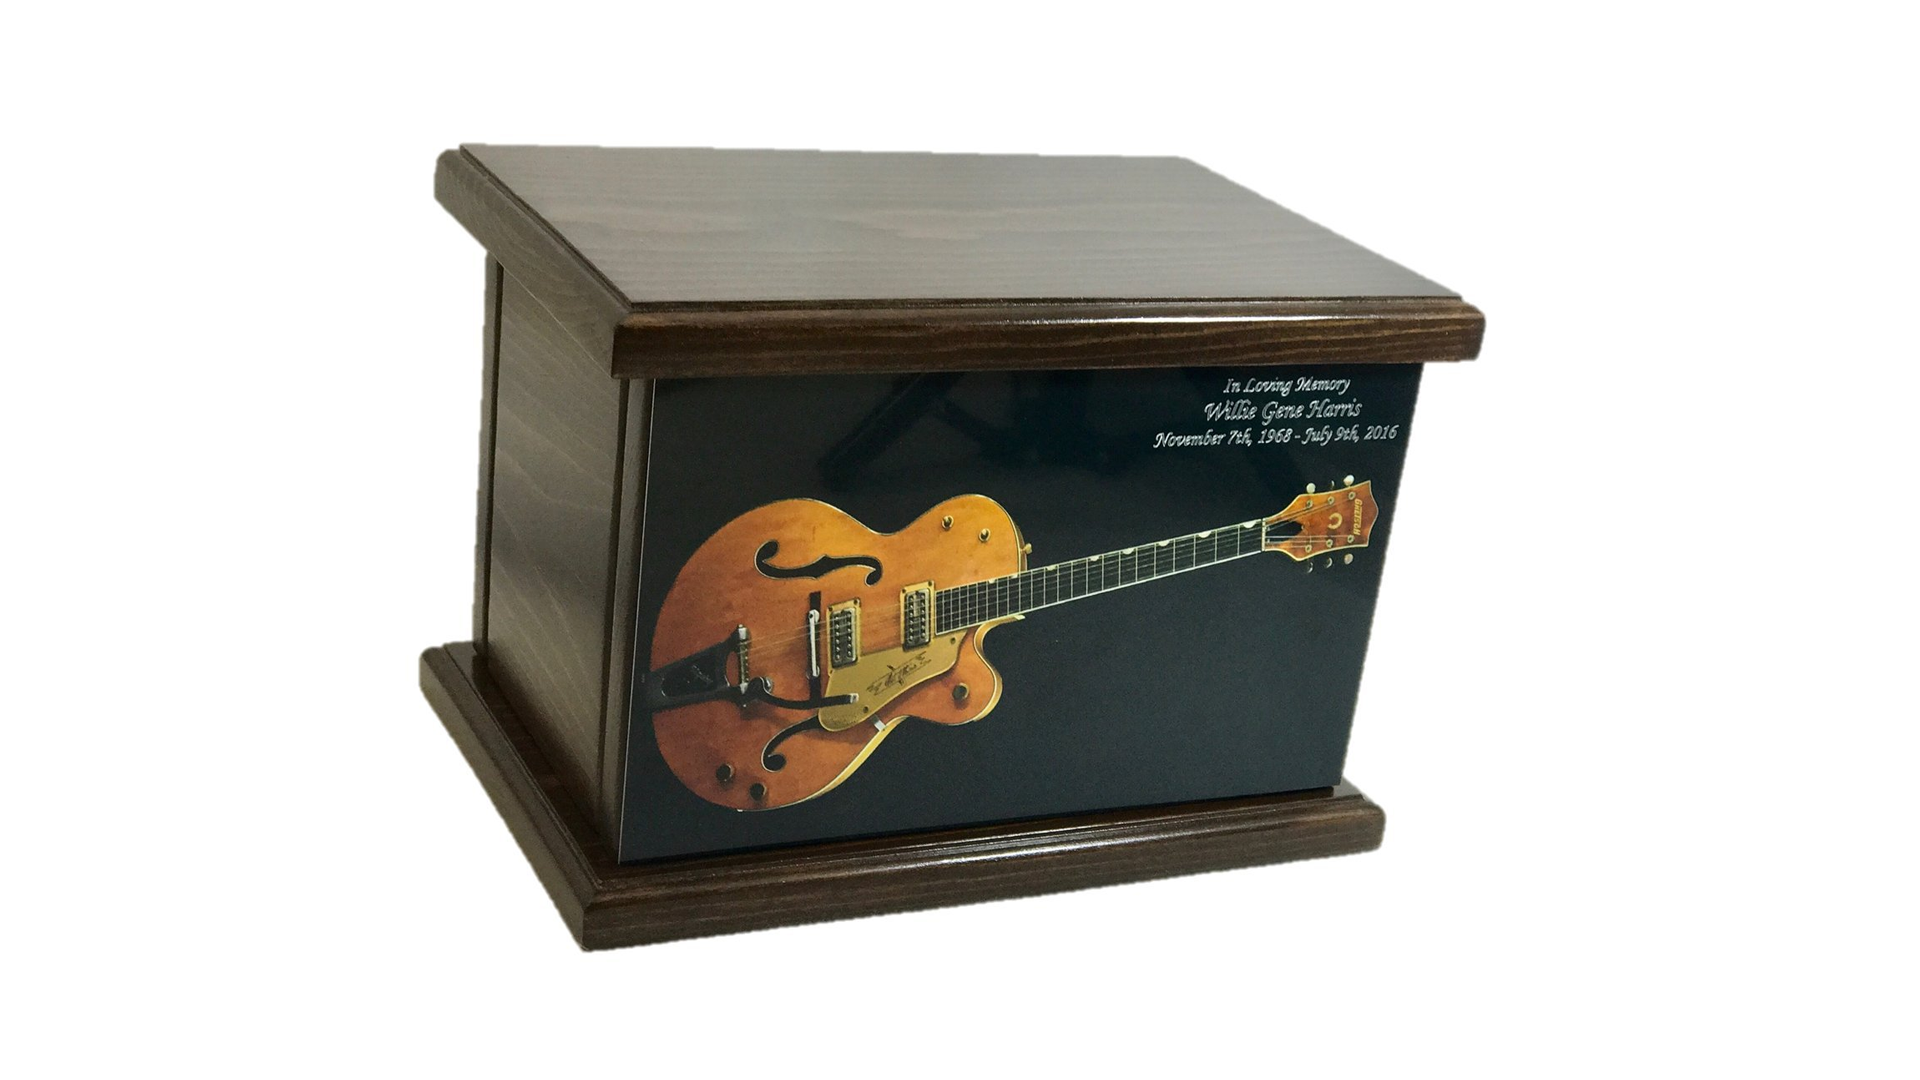 A rectangular wooden urn with an image of a hollow body Gretsch guitar on the front.